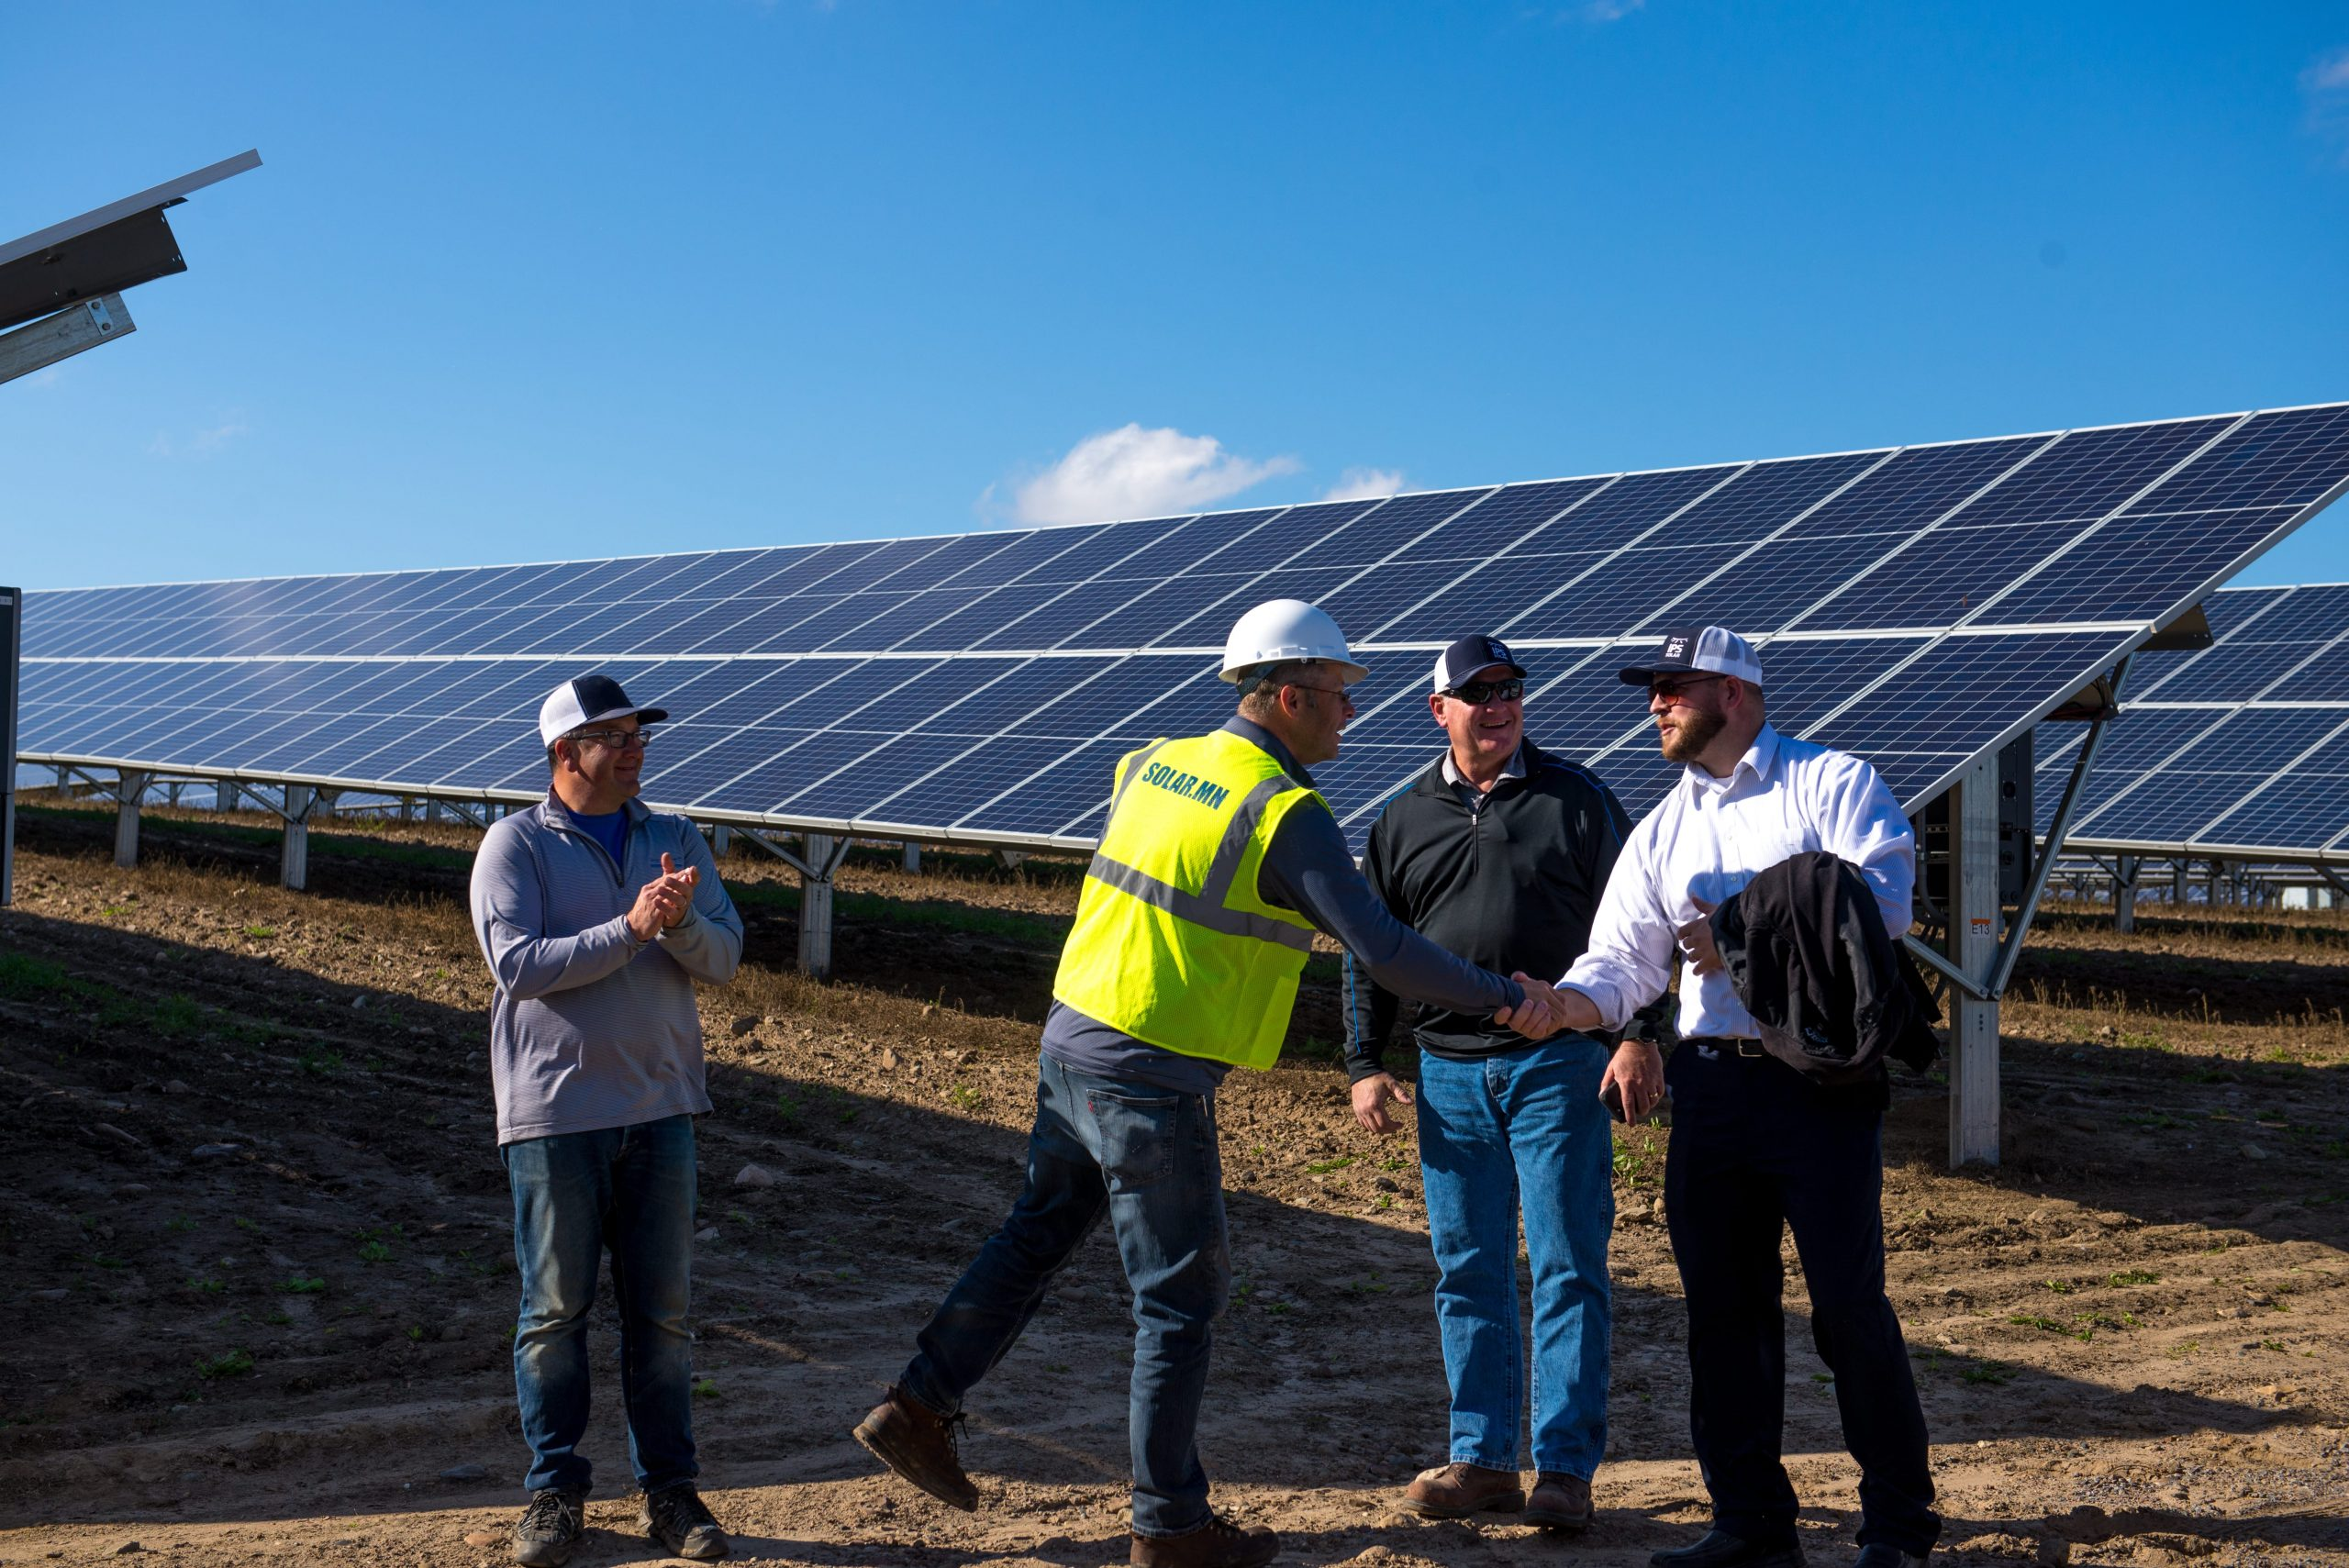 The-Infrastructure-Plan-&-what-it-means-for-Solar-and-Businesses Cover Photo-min